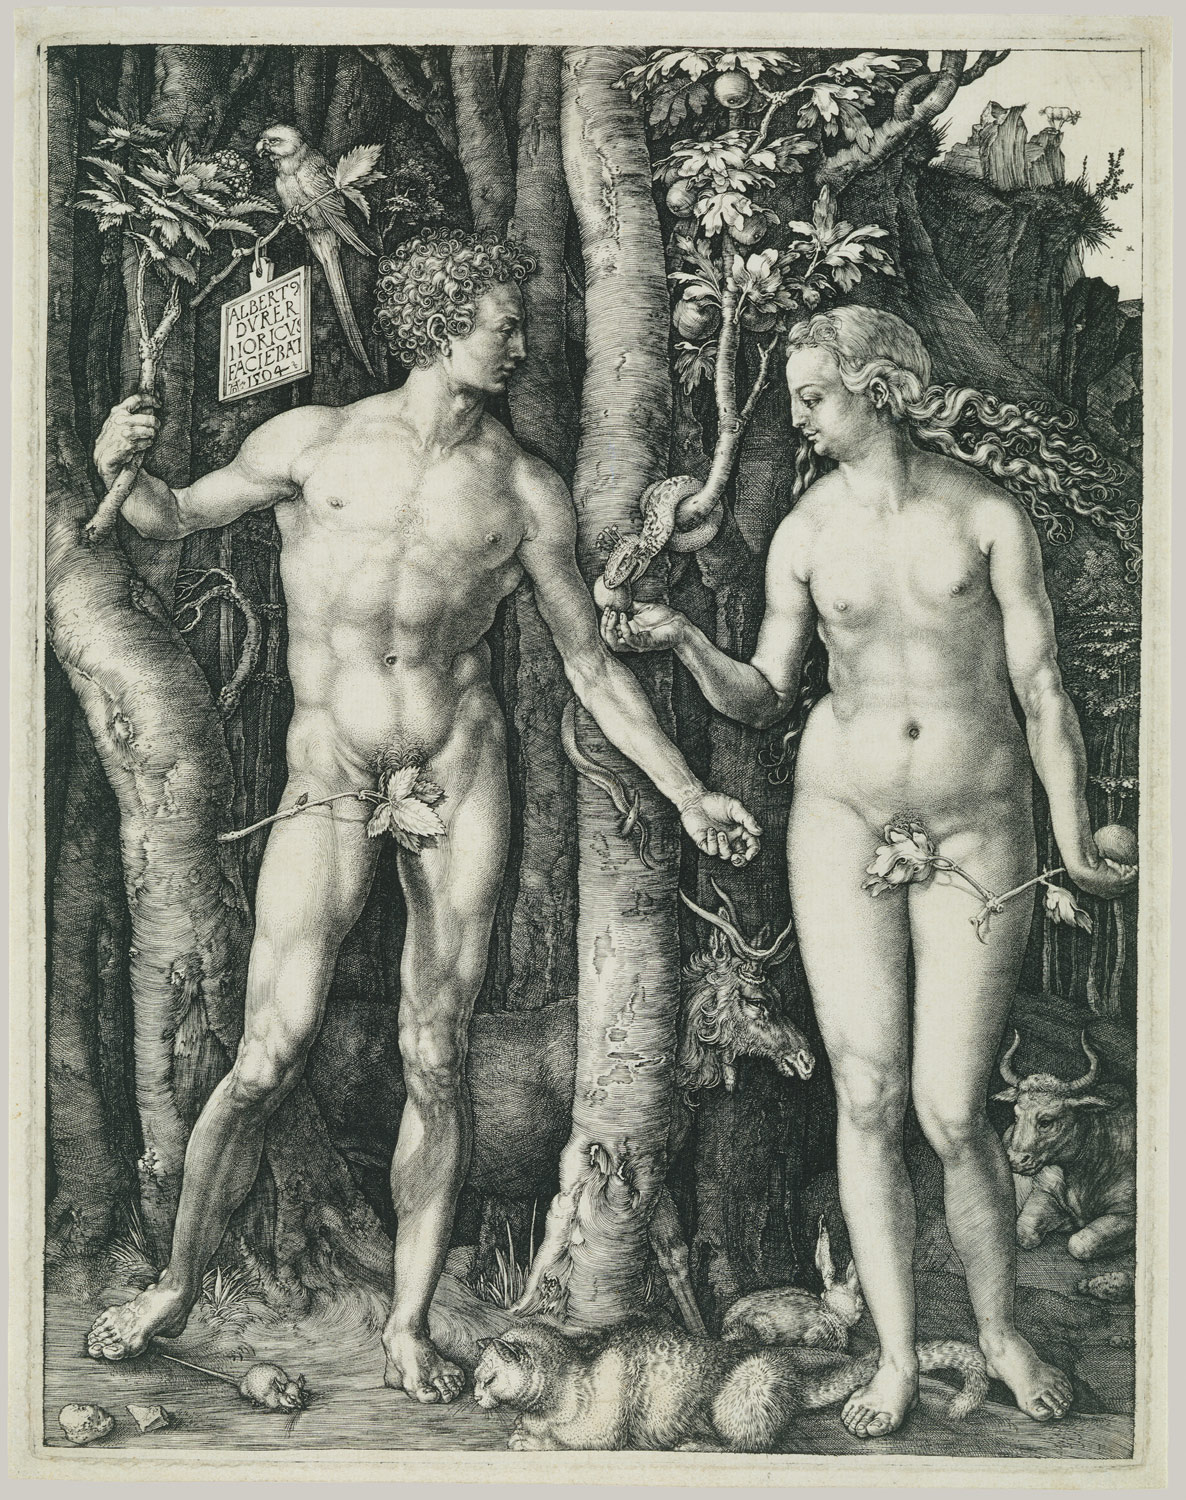 Albrecht Dürer Adam and Eve engraved print, c 1504